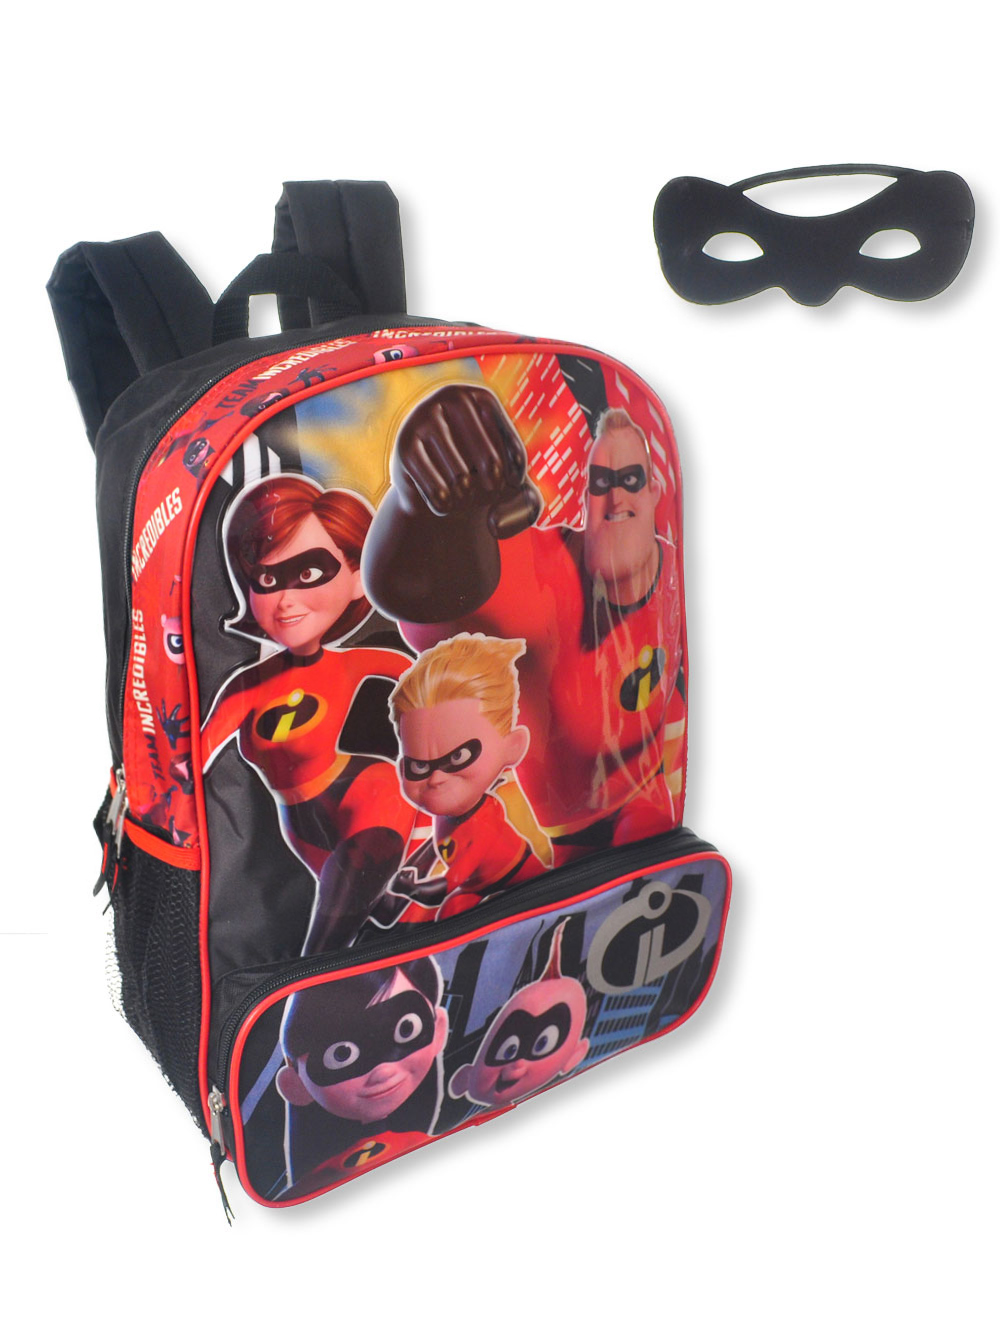 806442c98265 Disney Incredibles 2 Backpack with Eyemask